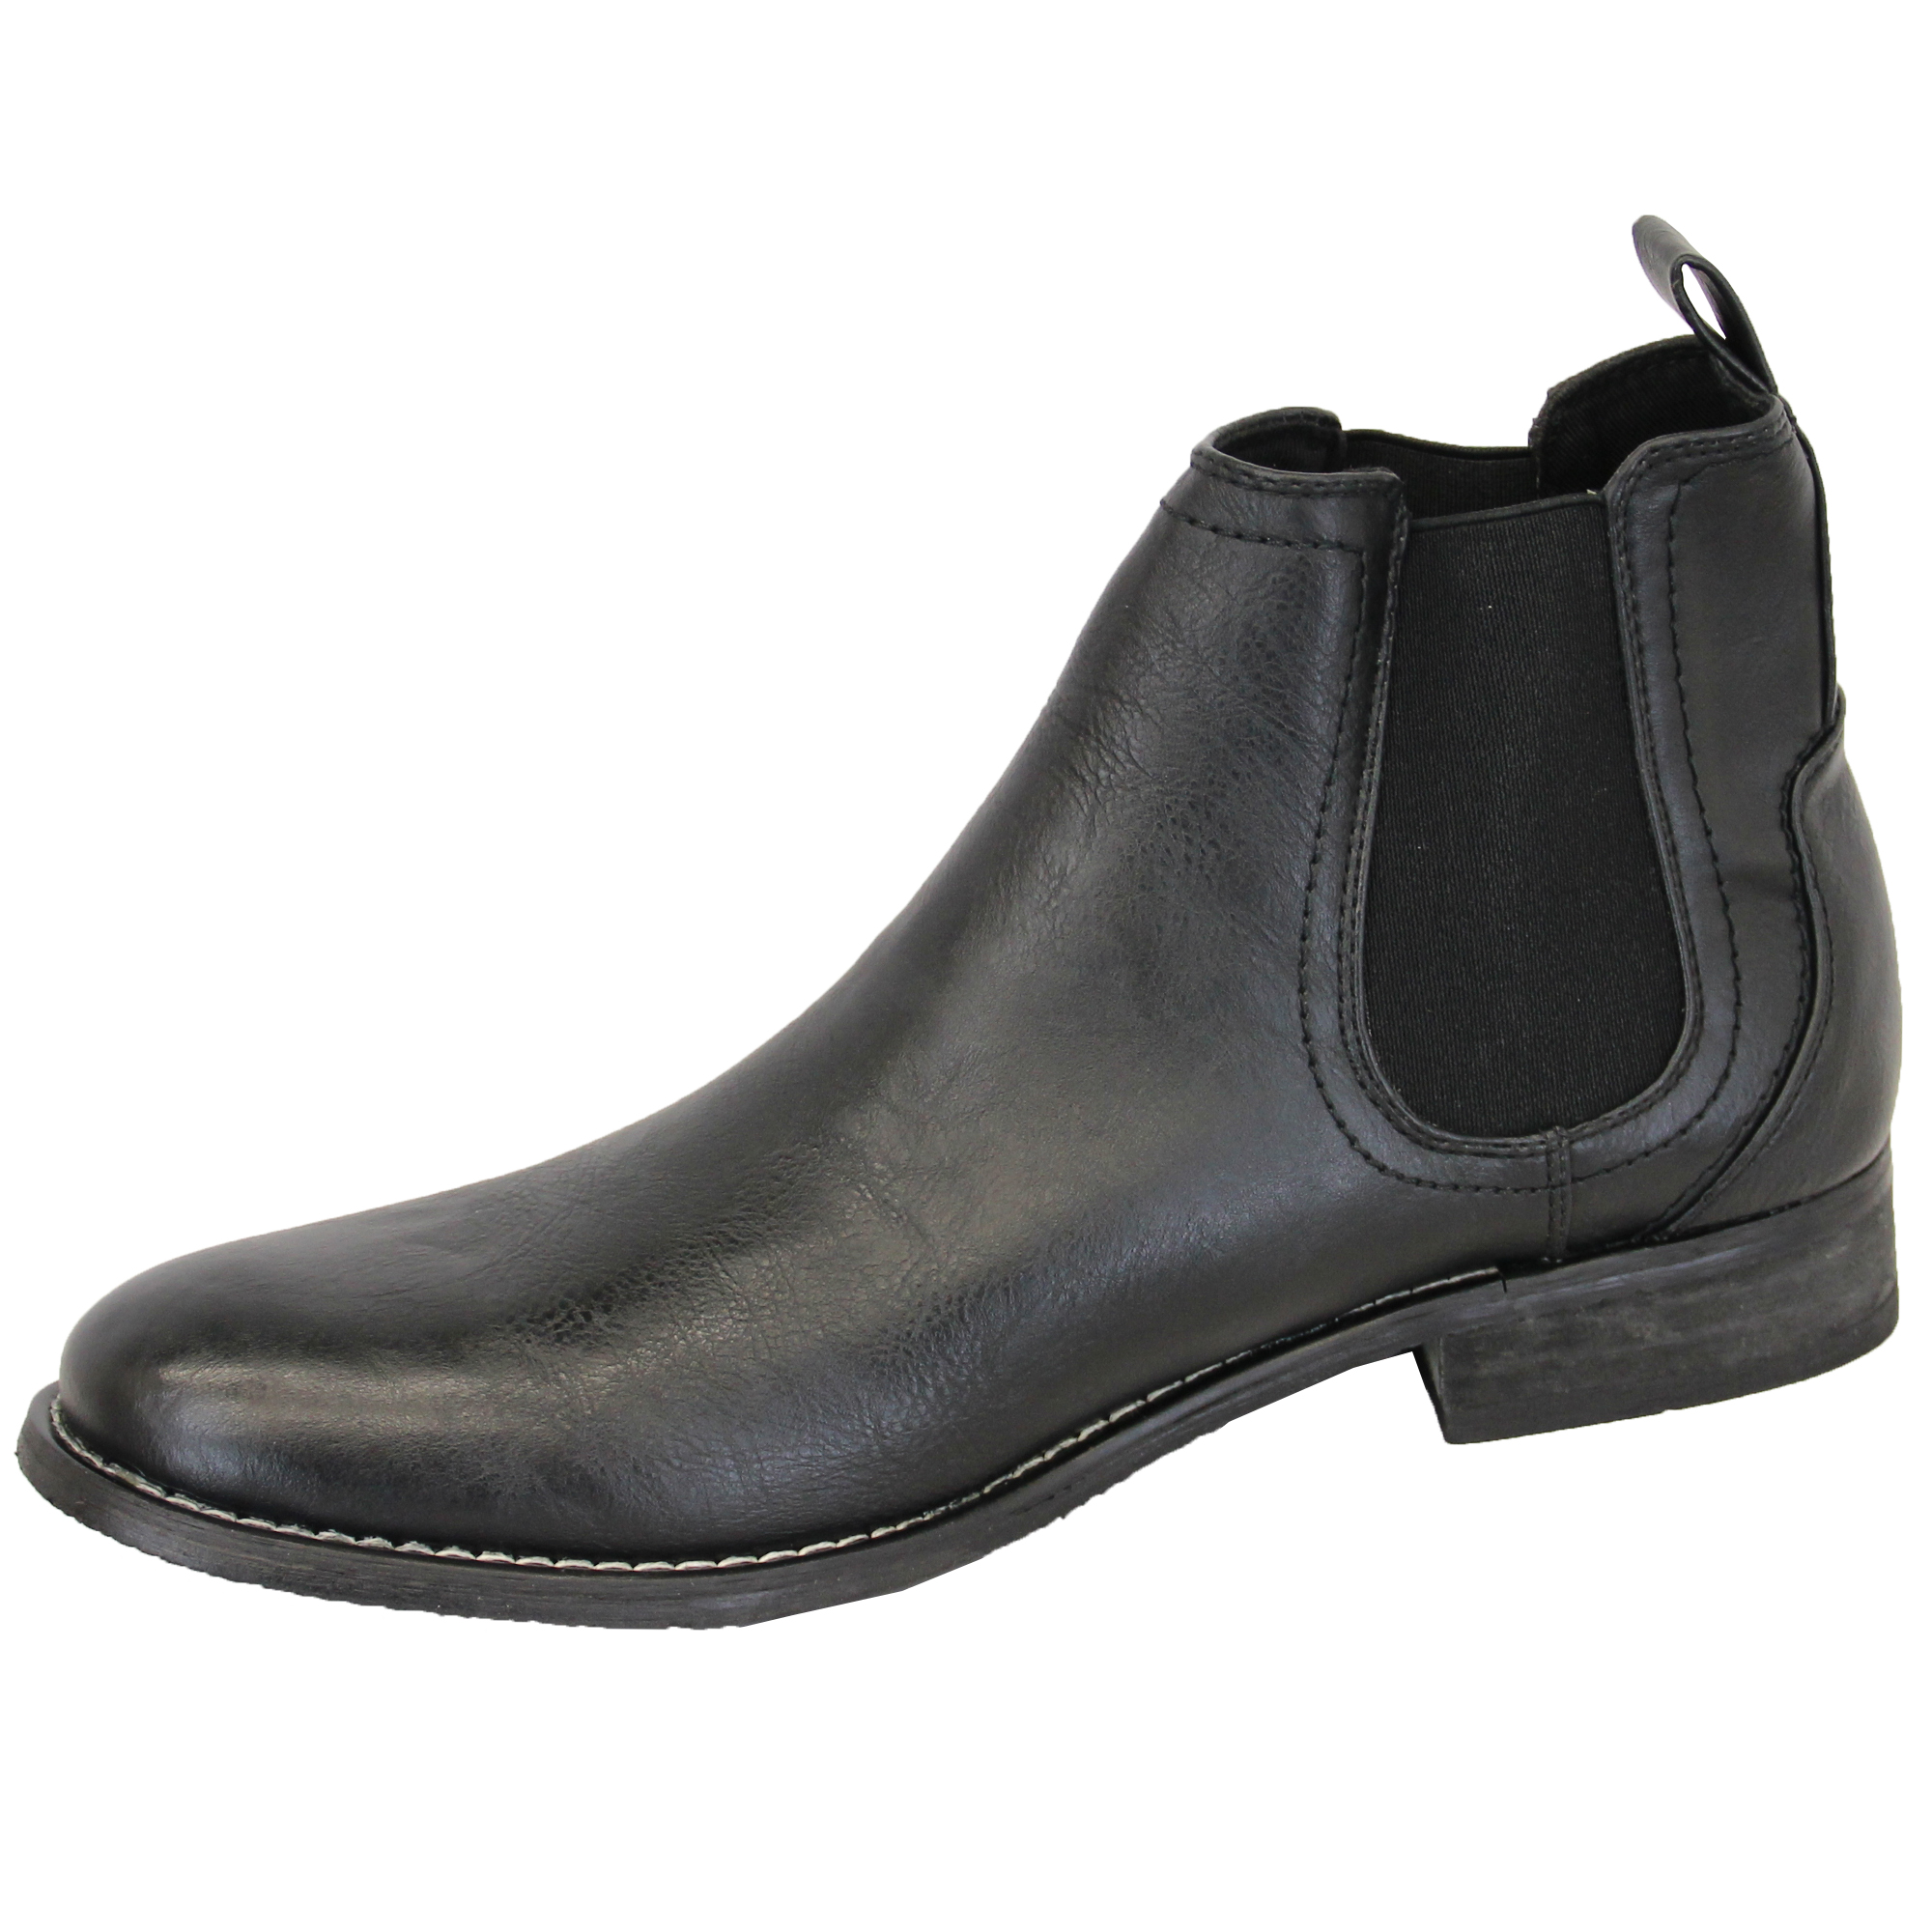 men shoes With strappy or classic Chelsea ankle boots, dual material or calfskin leather derbies, and patent leather brogues, Lanvin offers a range of men's dress shoes that are perfect for everyday wear.